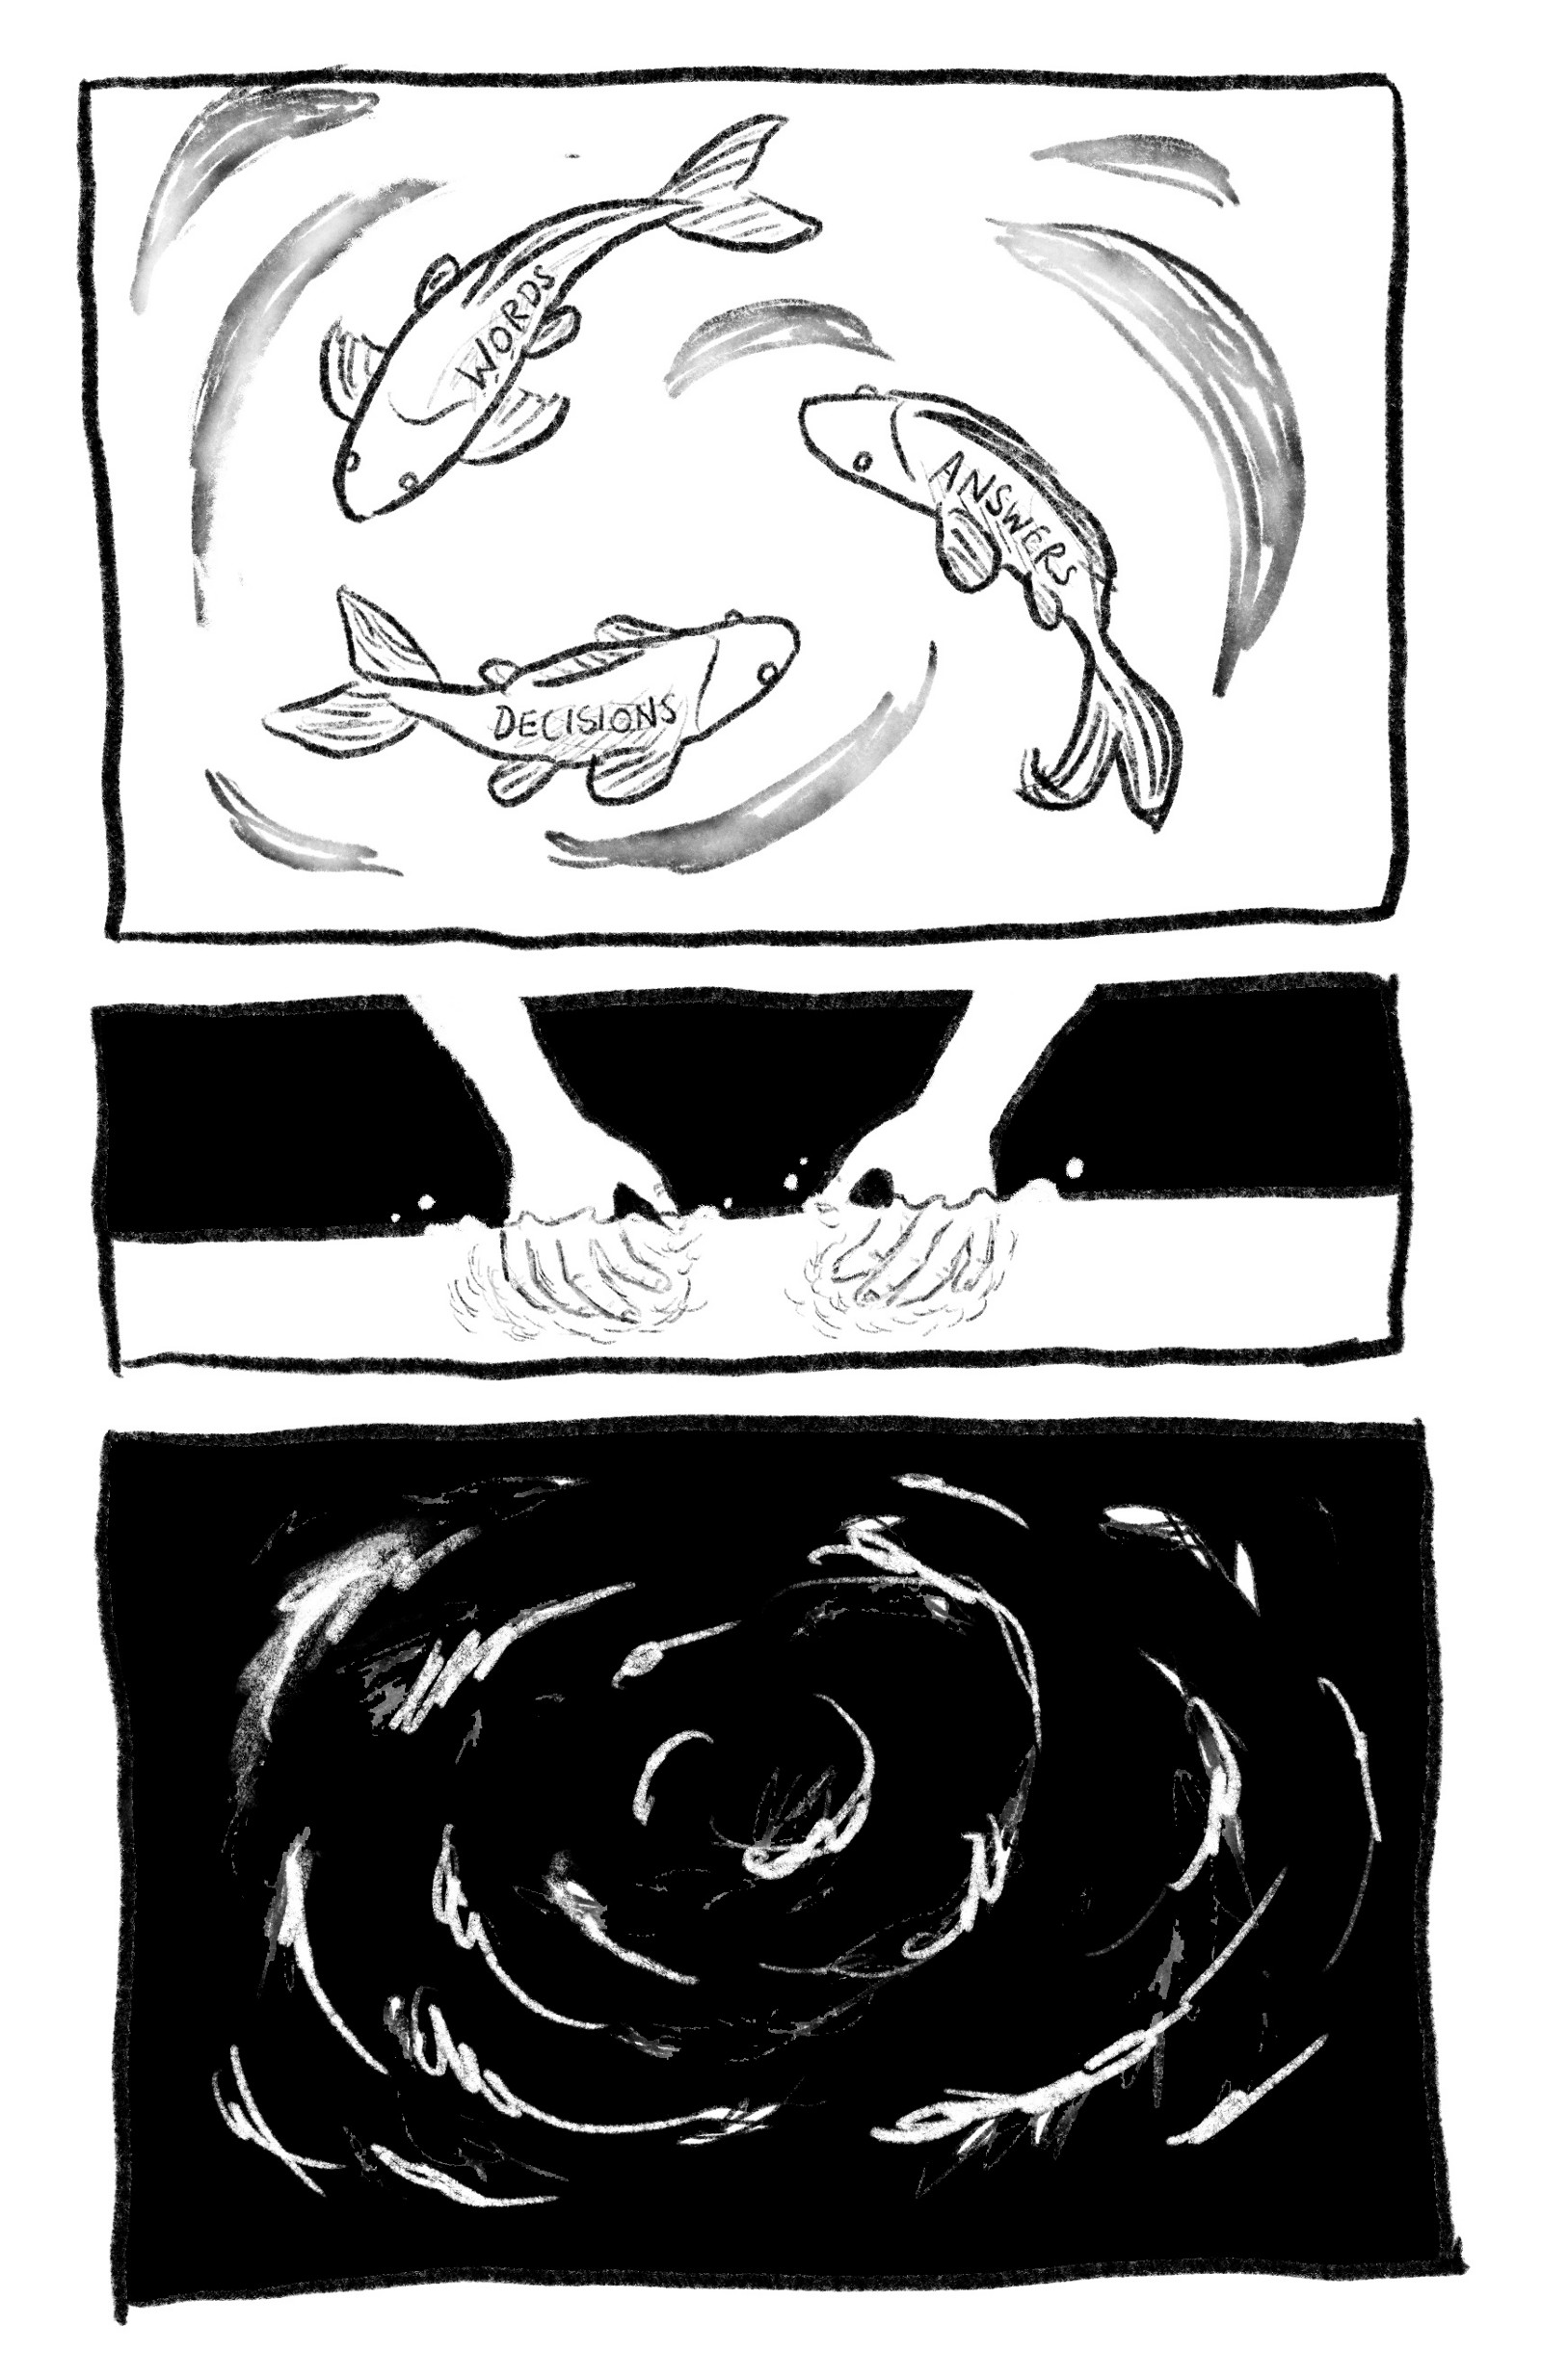 "Image description: a series of 3 sketches.  Sketch 1: three small fish swimming counterclockwise in a circle. The fish are labeled ""WORDS,"" ""DECISIONS,"" and ""ANSWERS."" Sketch 2: two white hands reaching into a pool of water.  Sketch 3: a spiral of white scribbles on a black background."